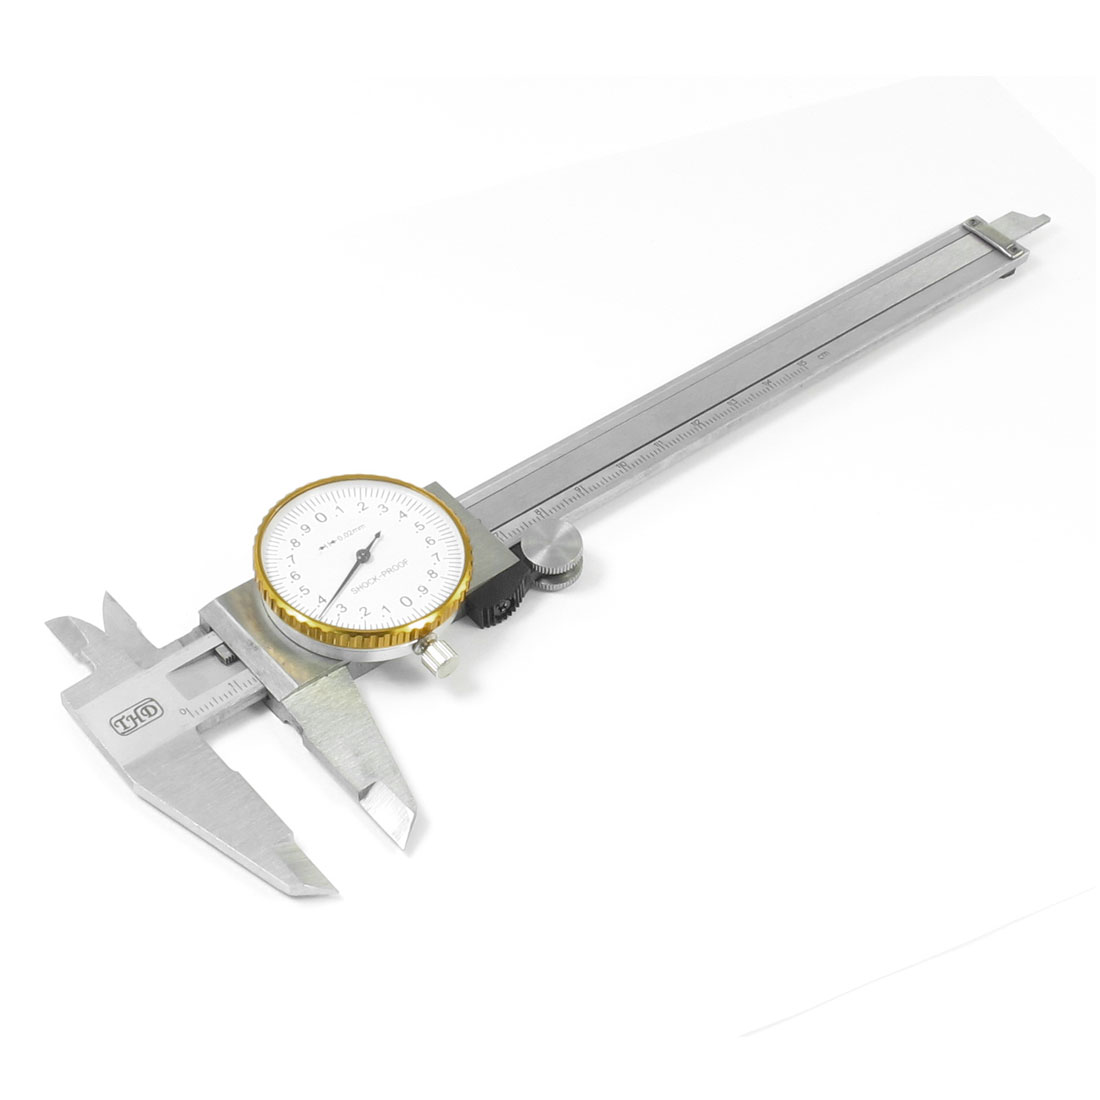 0-150mm Dial Slide Scale Vernier Caliper w Plastic Case